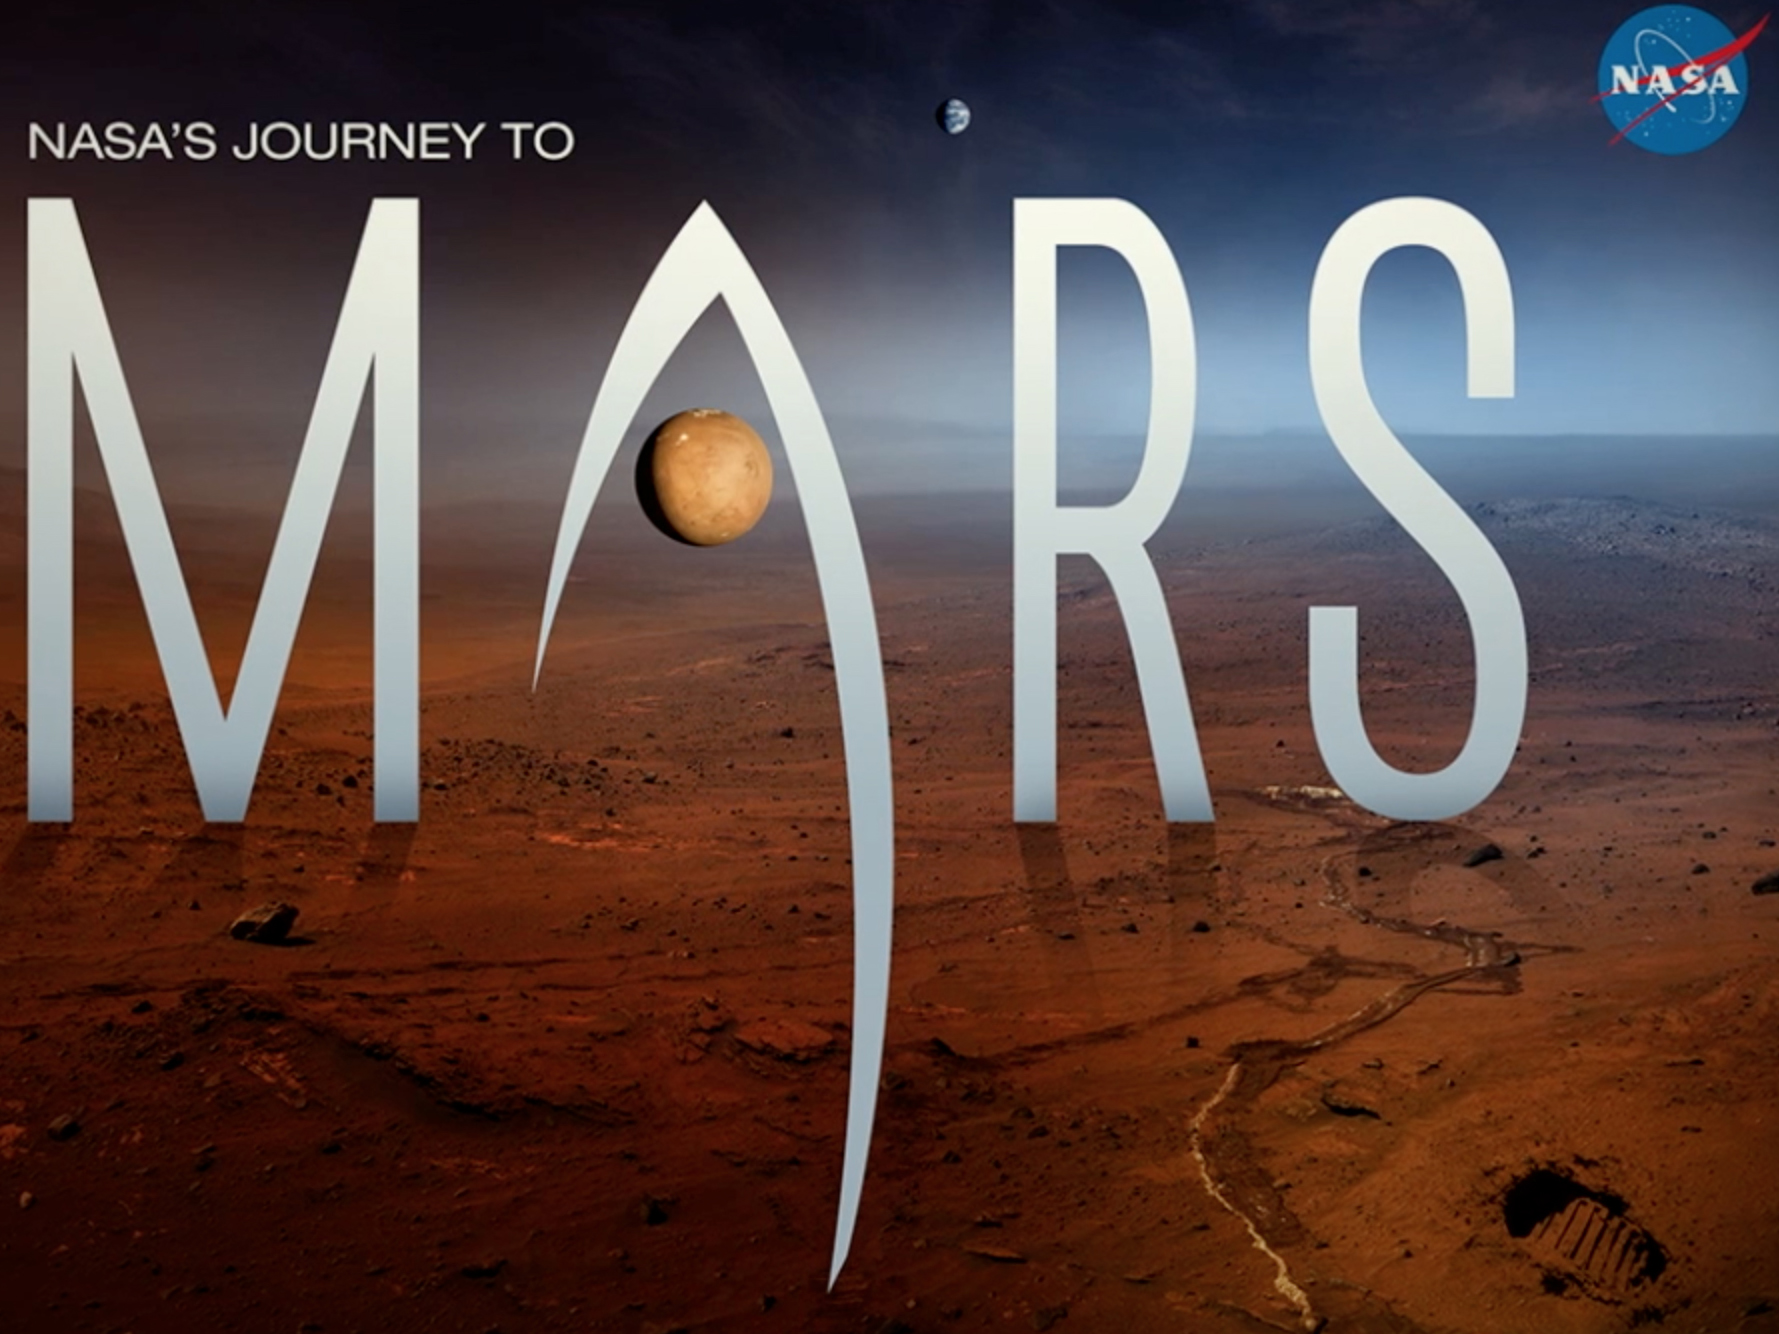 50 Years of Mars Exploration